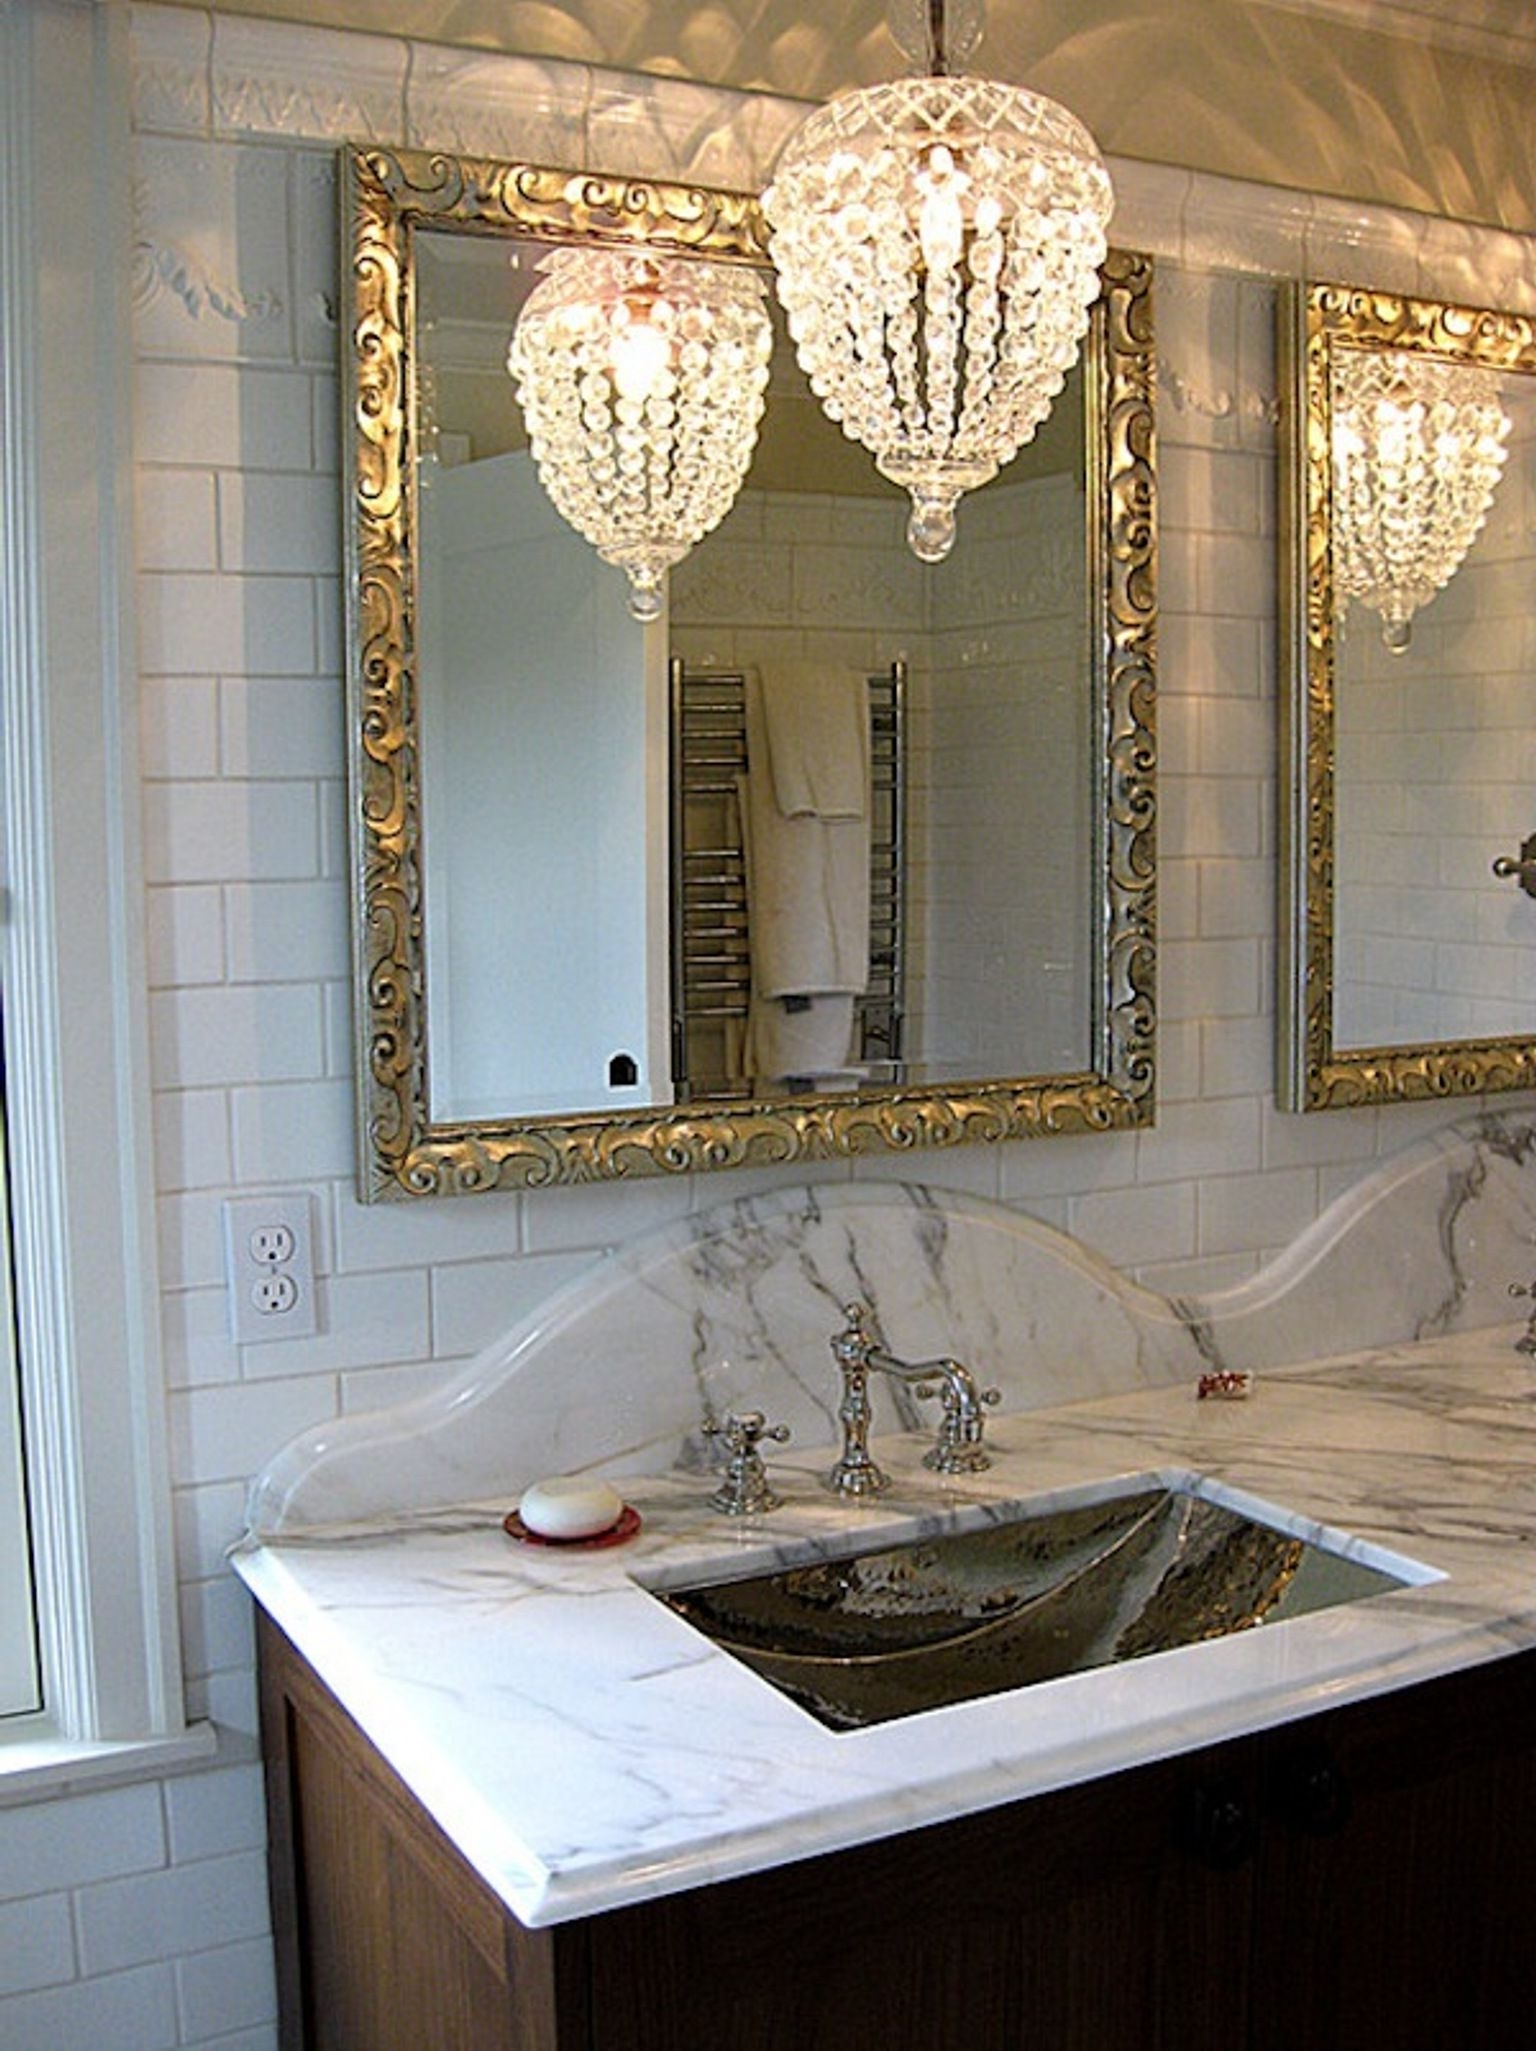 Most Current Bathroom: Bathroom Chandeliers Crystals Over Tub In A Rustic Throughout Bathroom Chandeliers (View 12 of 20)